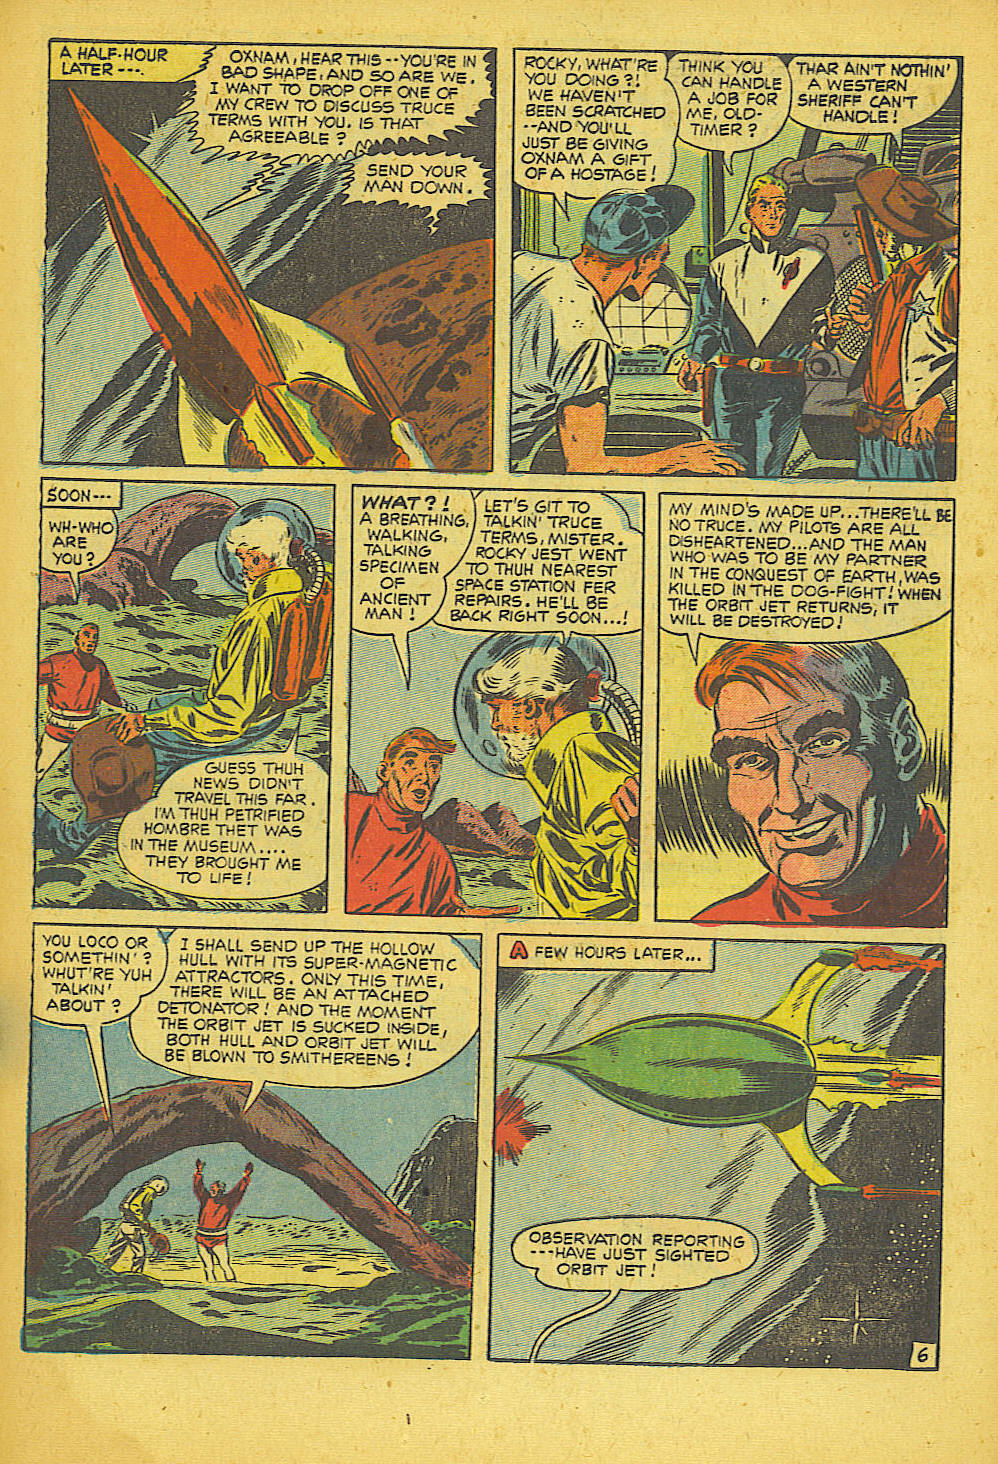 Read online Space Adventures comic -  Issue #16 - 14